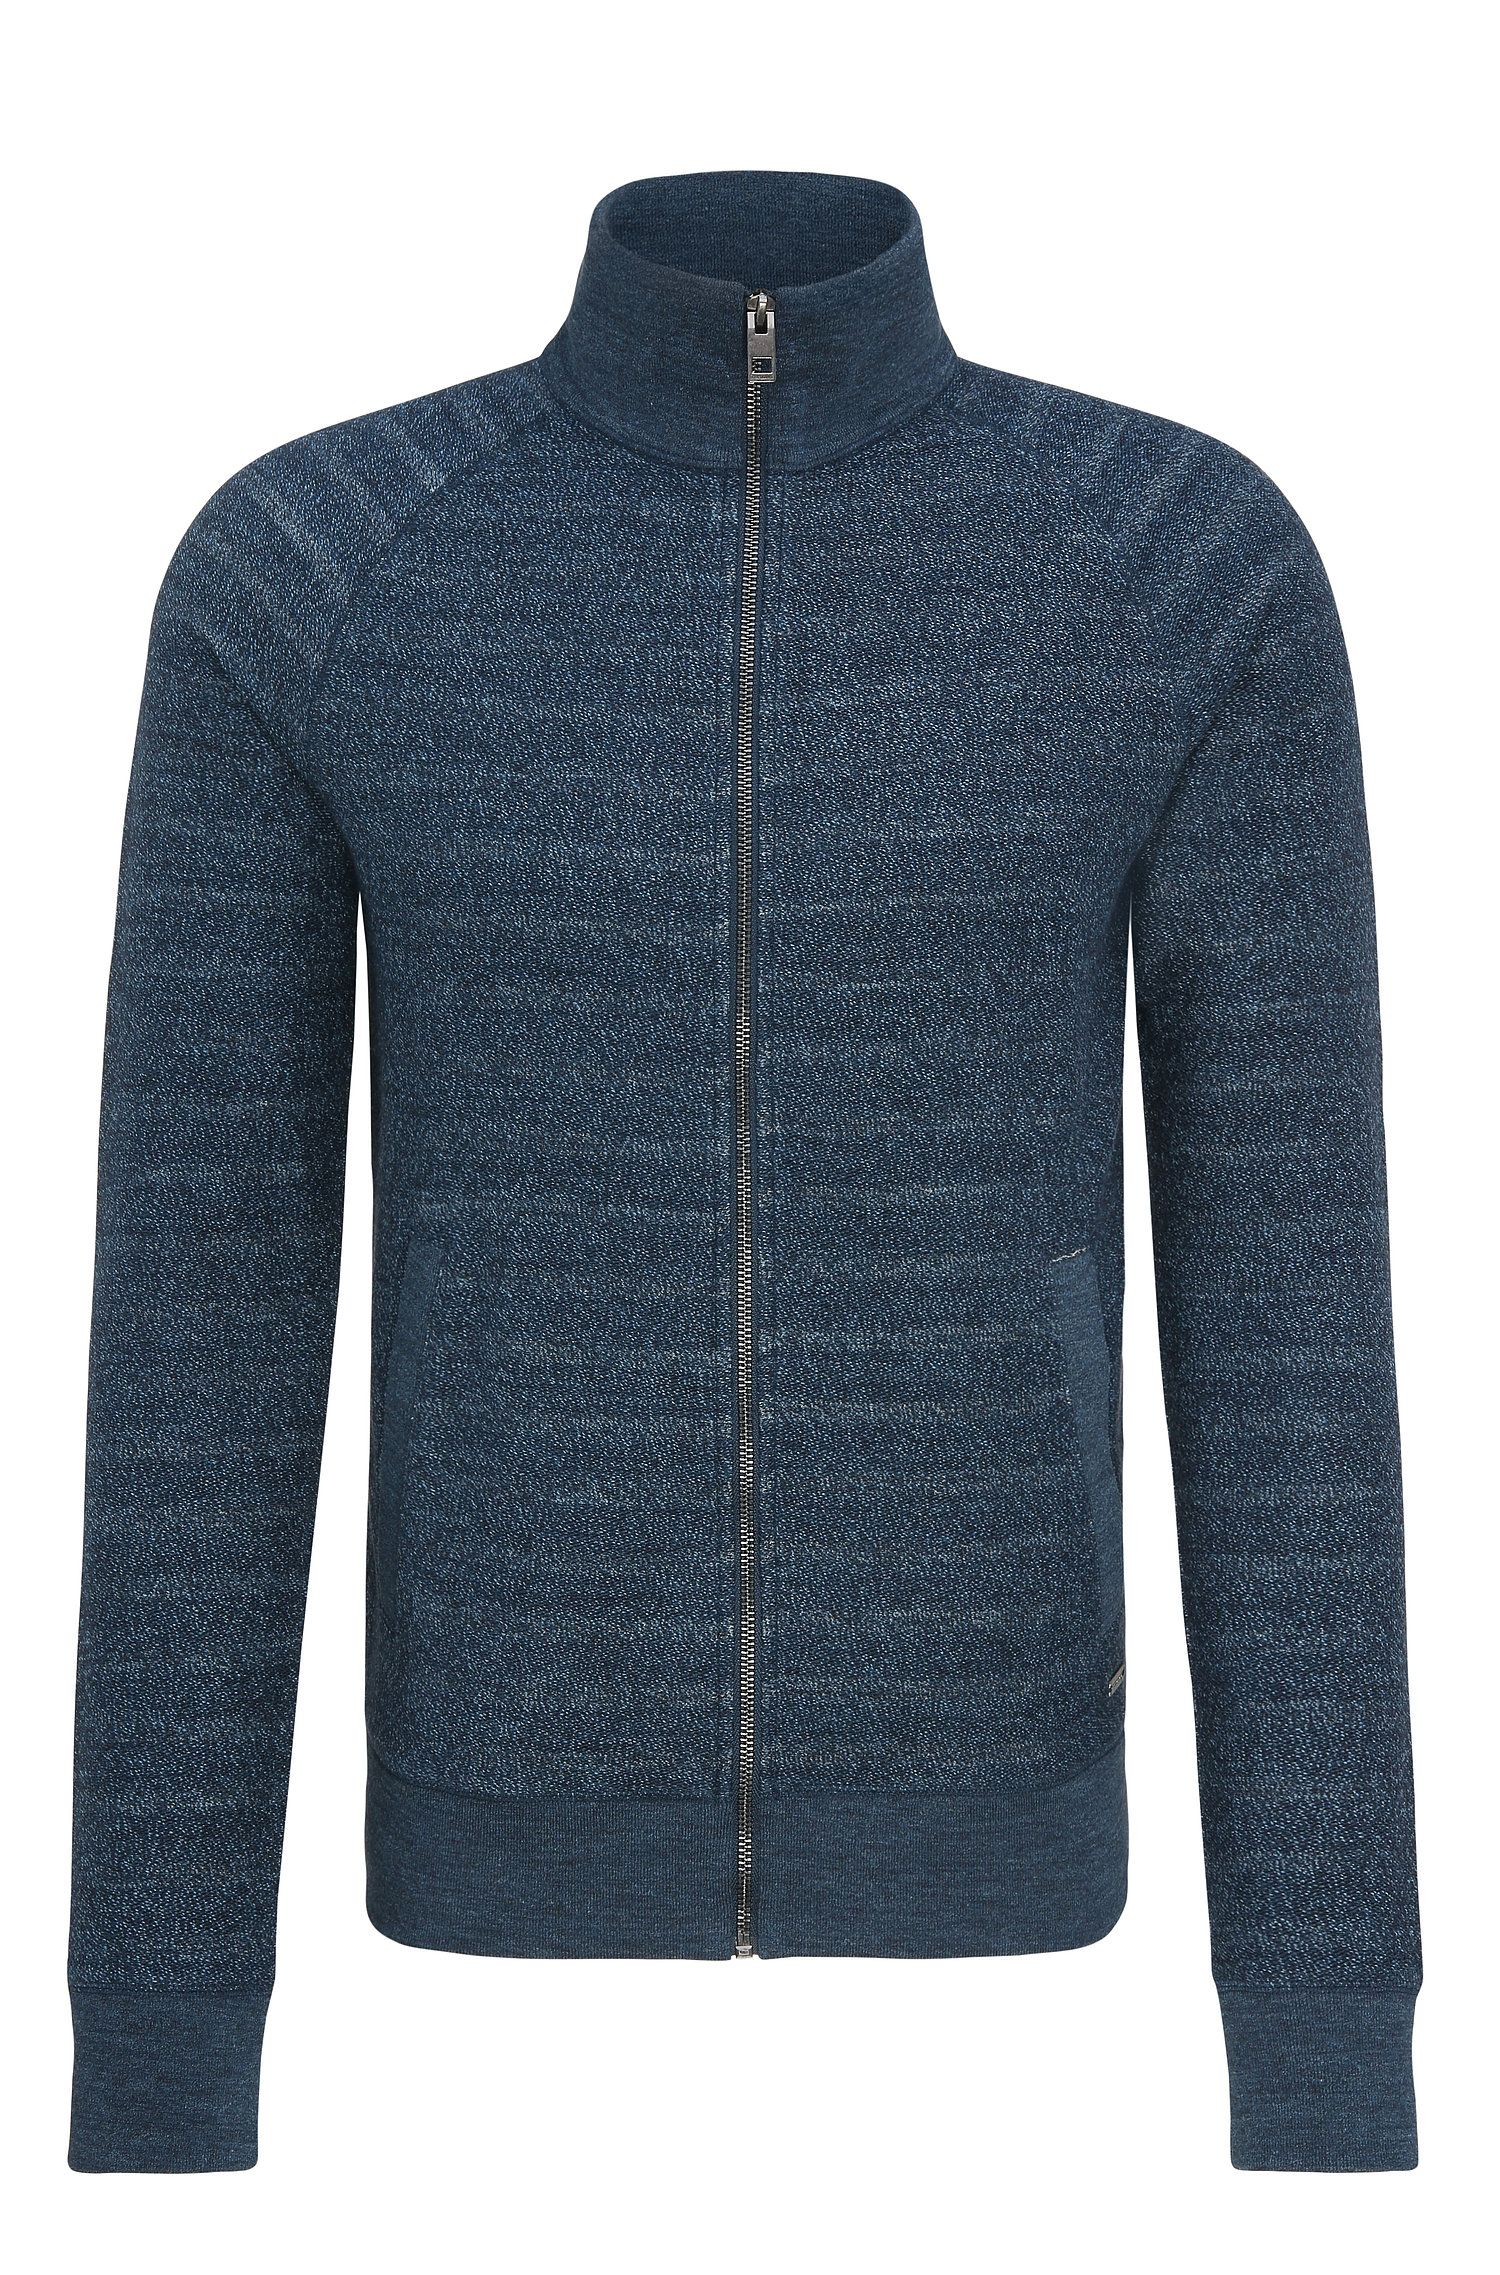 'Zlate' | Melange Cotton Full-Zip Sweater